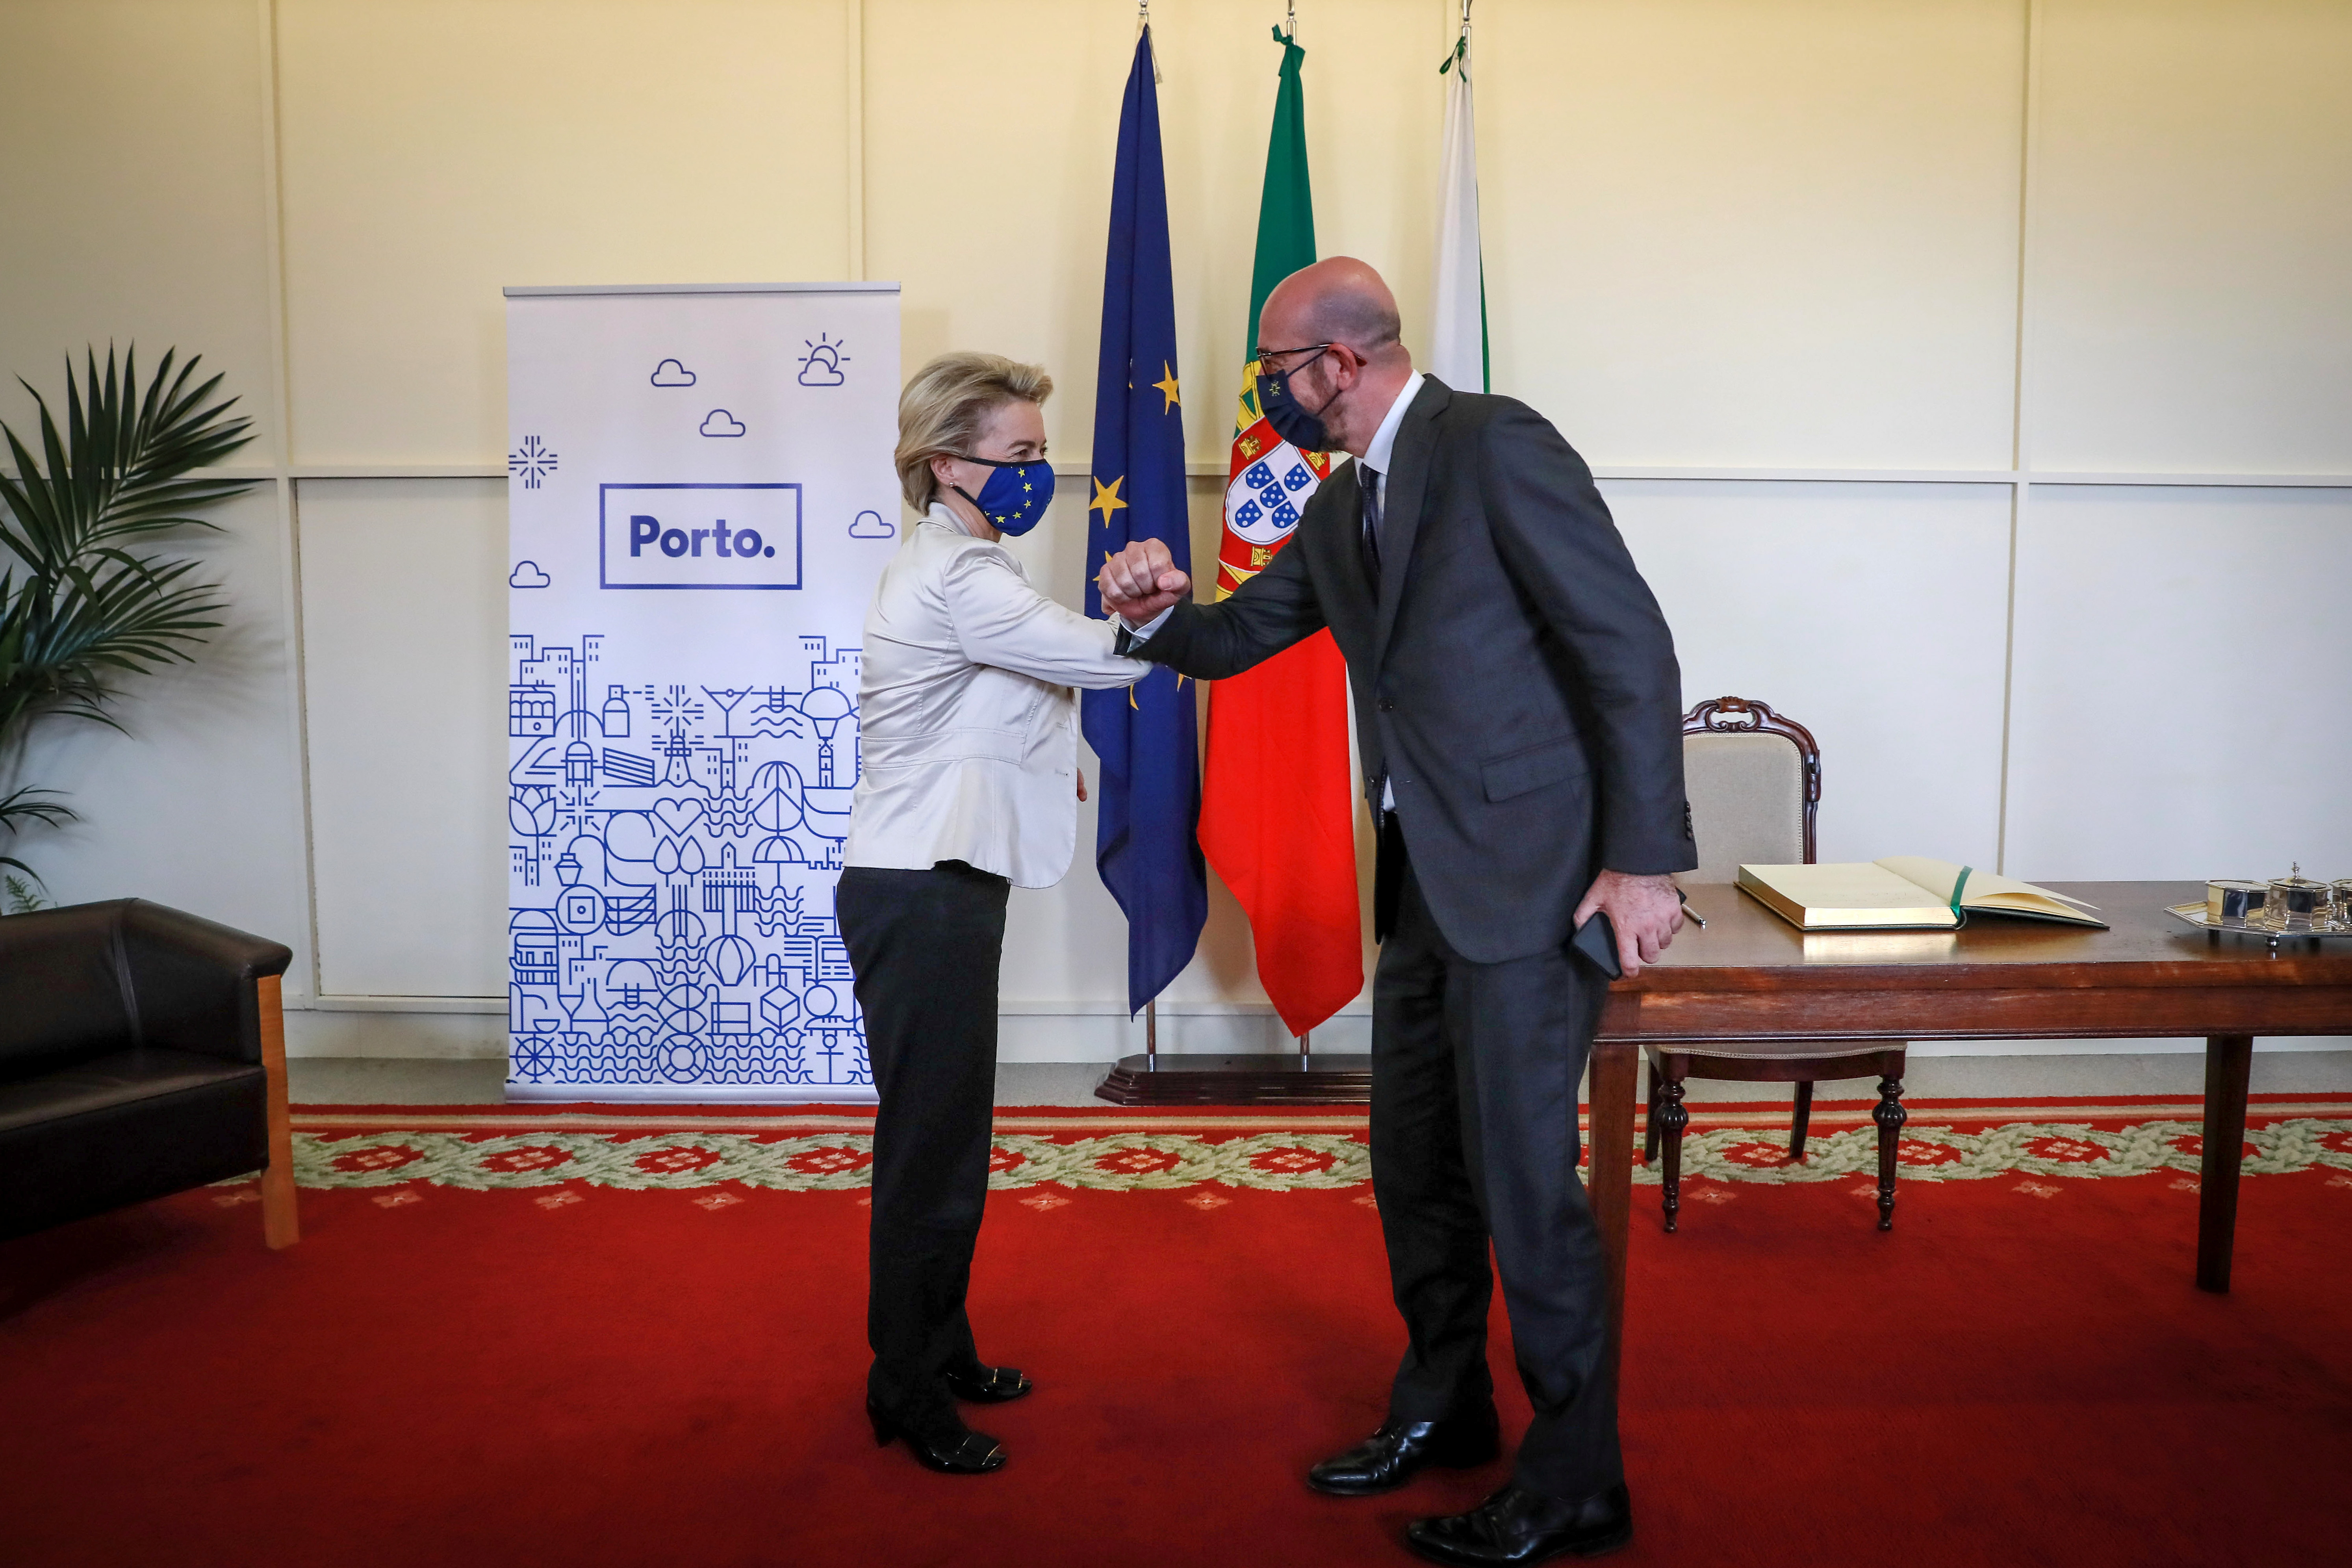 President of the European Council Charles Michel and President of the European Commission Ursula Von der Leyen greet each other during the ceremony to present the keys to the city of Porto at Porto City hall, Portugal, May 7, 2021. Estela Silva/Pool via REUTERS